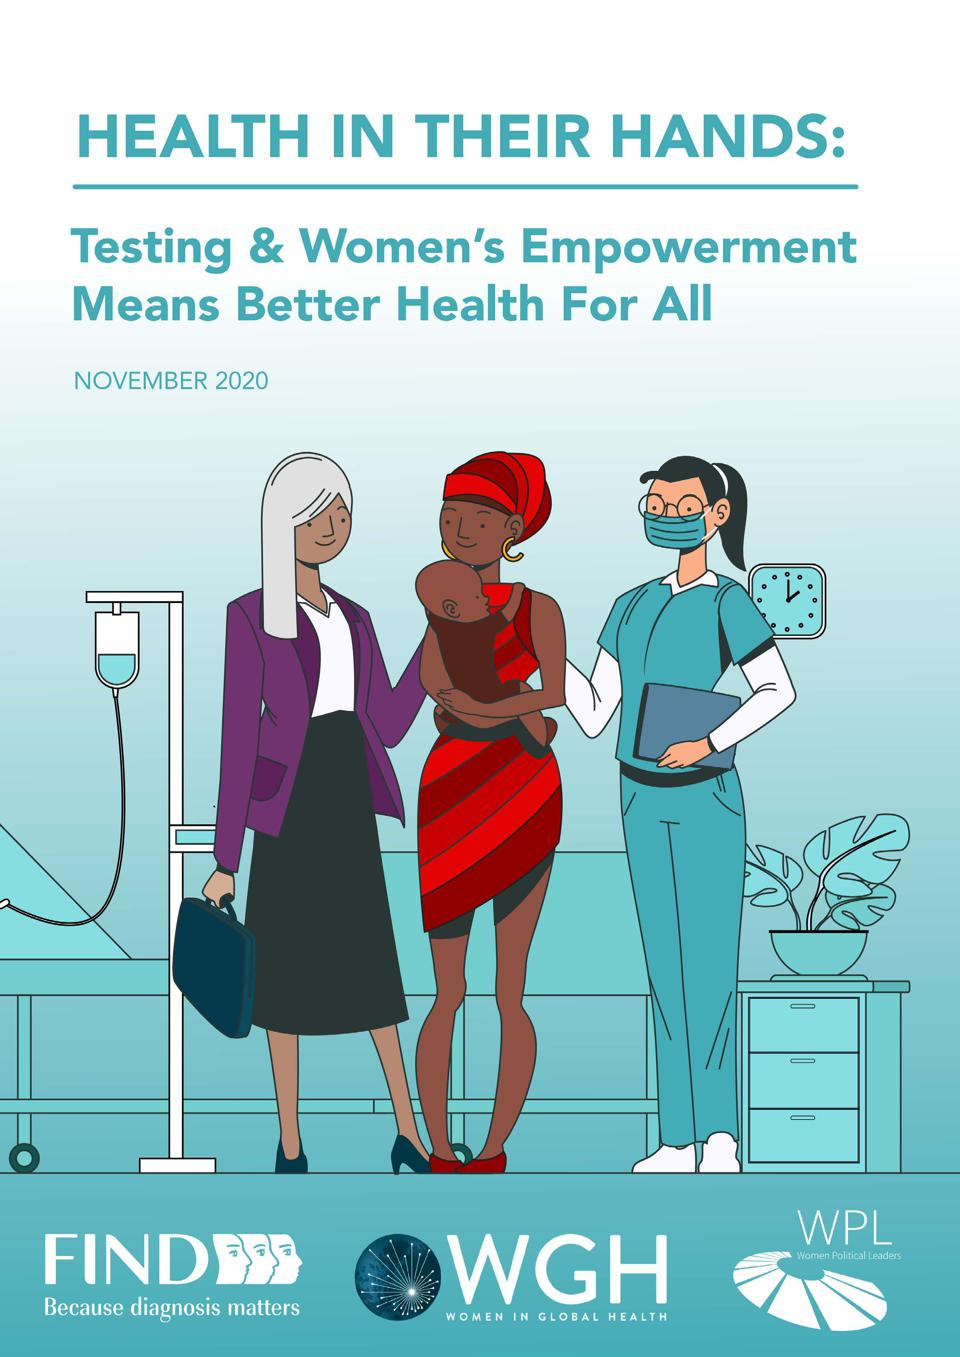 Report on testing and empowerment of women